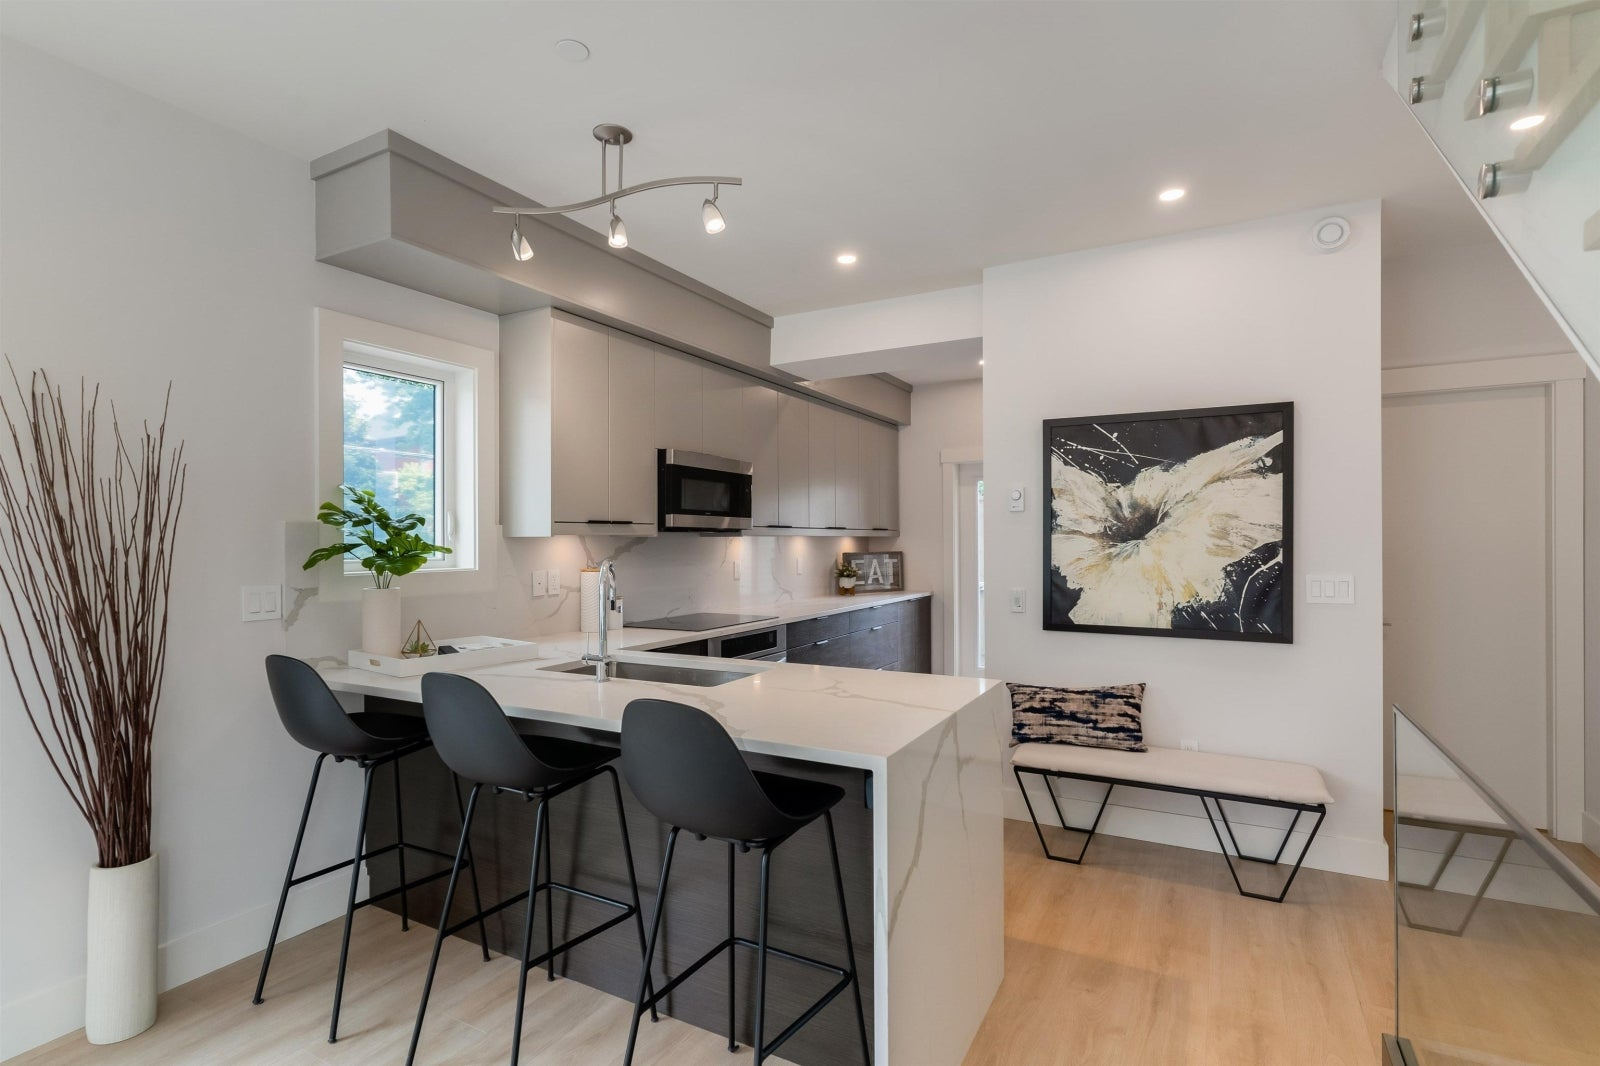 TH 1 230-232 E 8TH STREET - Central Lonsdale Townhouse for sale, 3 Bedrooms (R2610807) #10